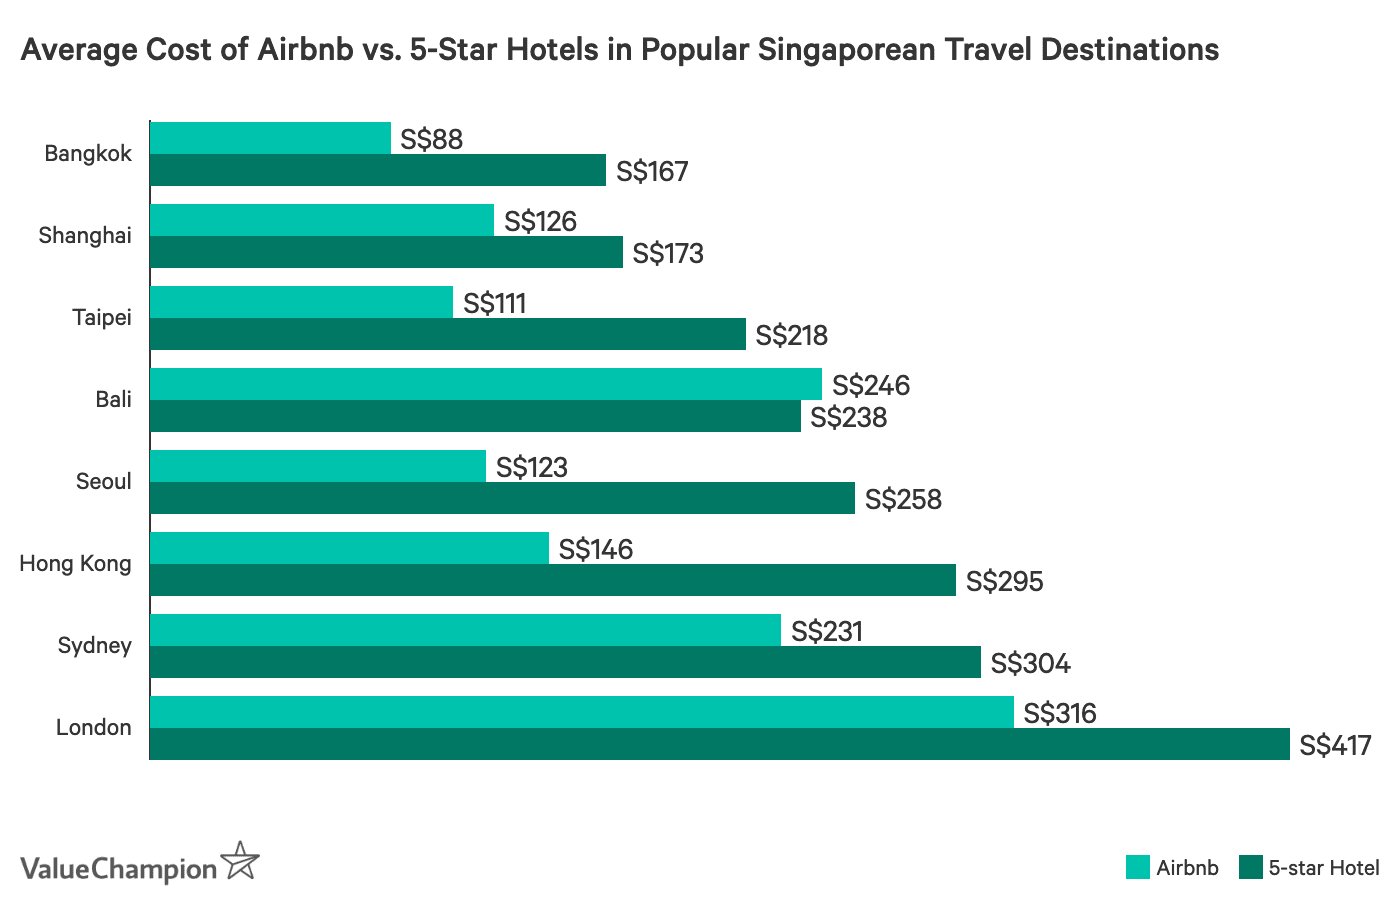 This tables shows the average cost of Airbnbs compared to 5-star hotels in popular travel destinations for Singaporeans